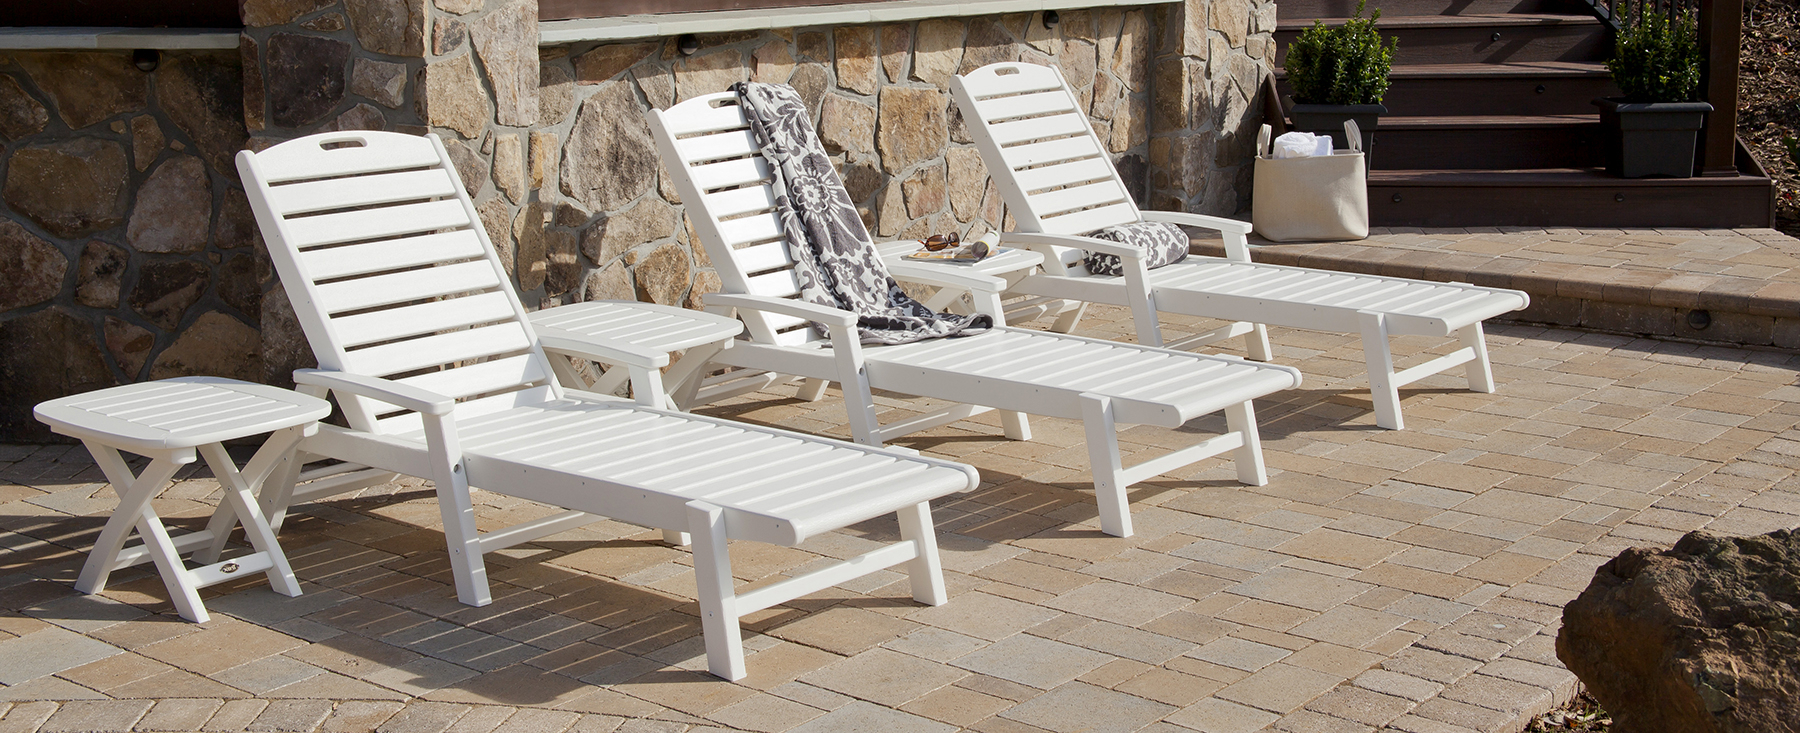 Aluminum Wheeled Chaise Lounges Regarding 2020 The Shopper's Guide To Buying An Outdoor Chaise Lounge (Gallery 25 of 25)